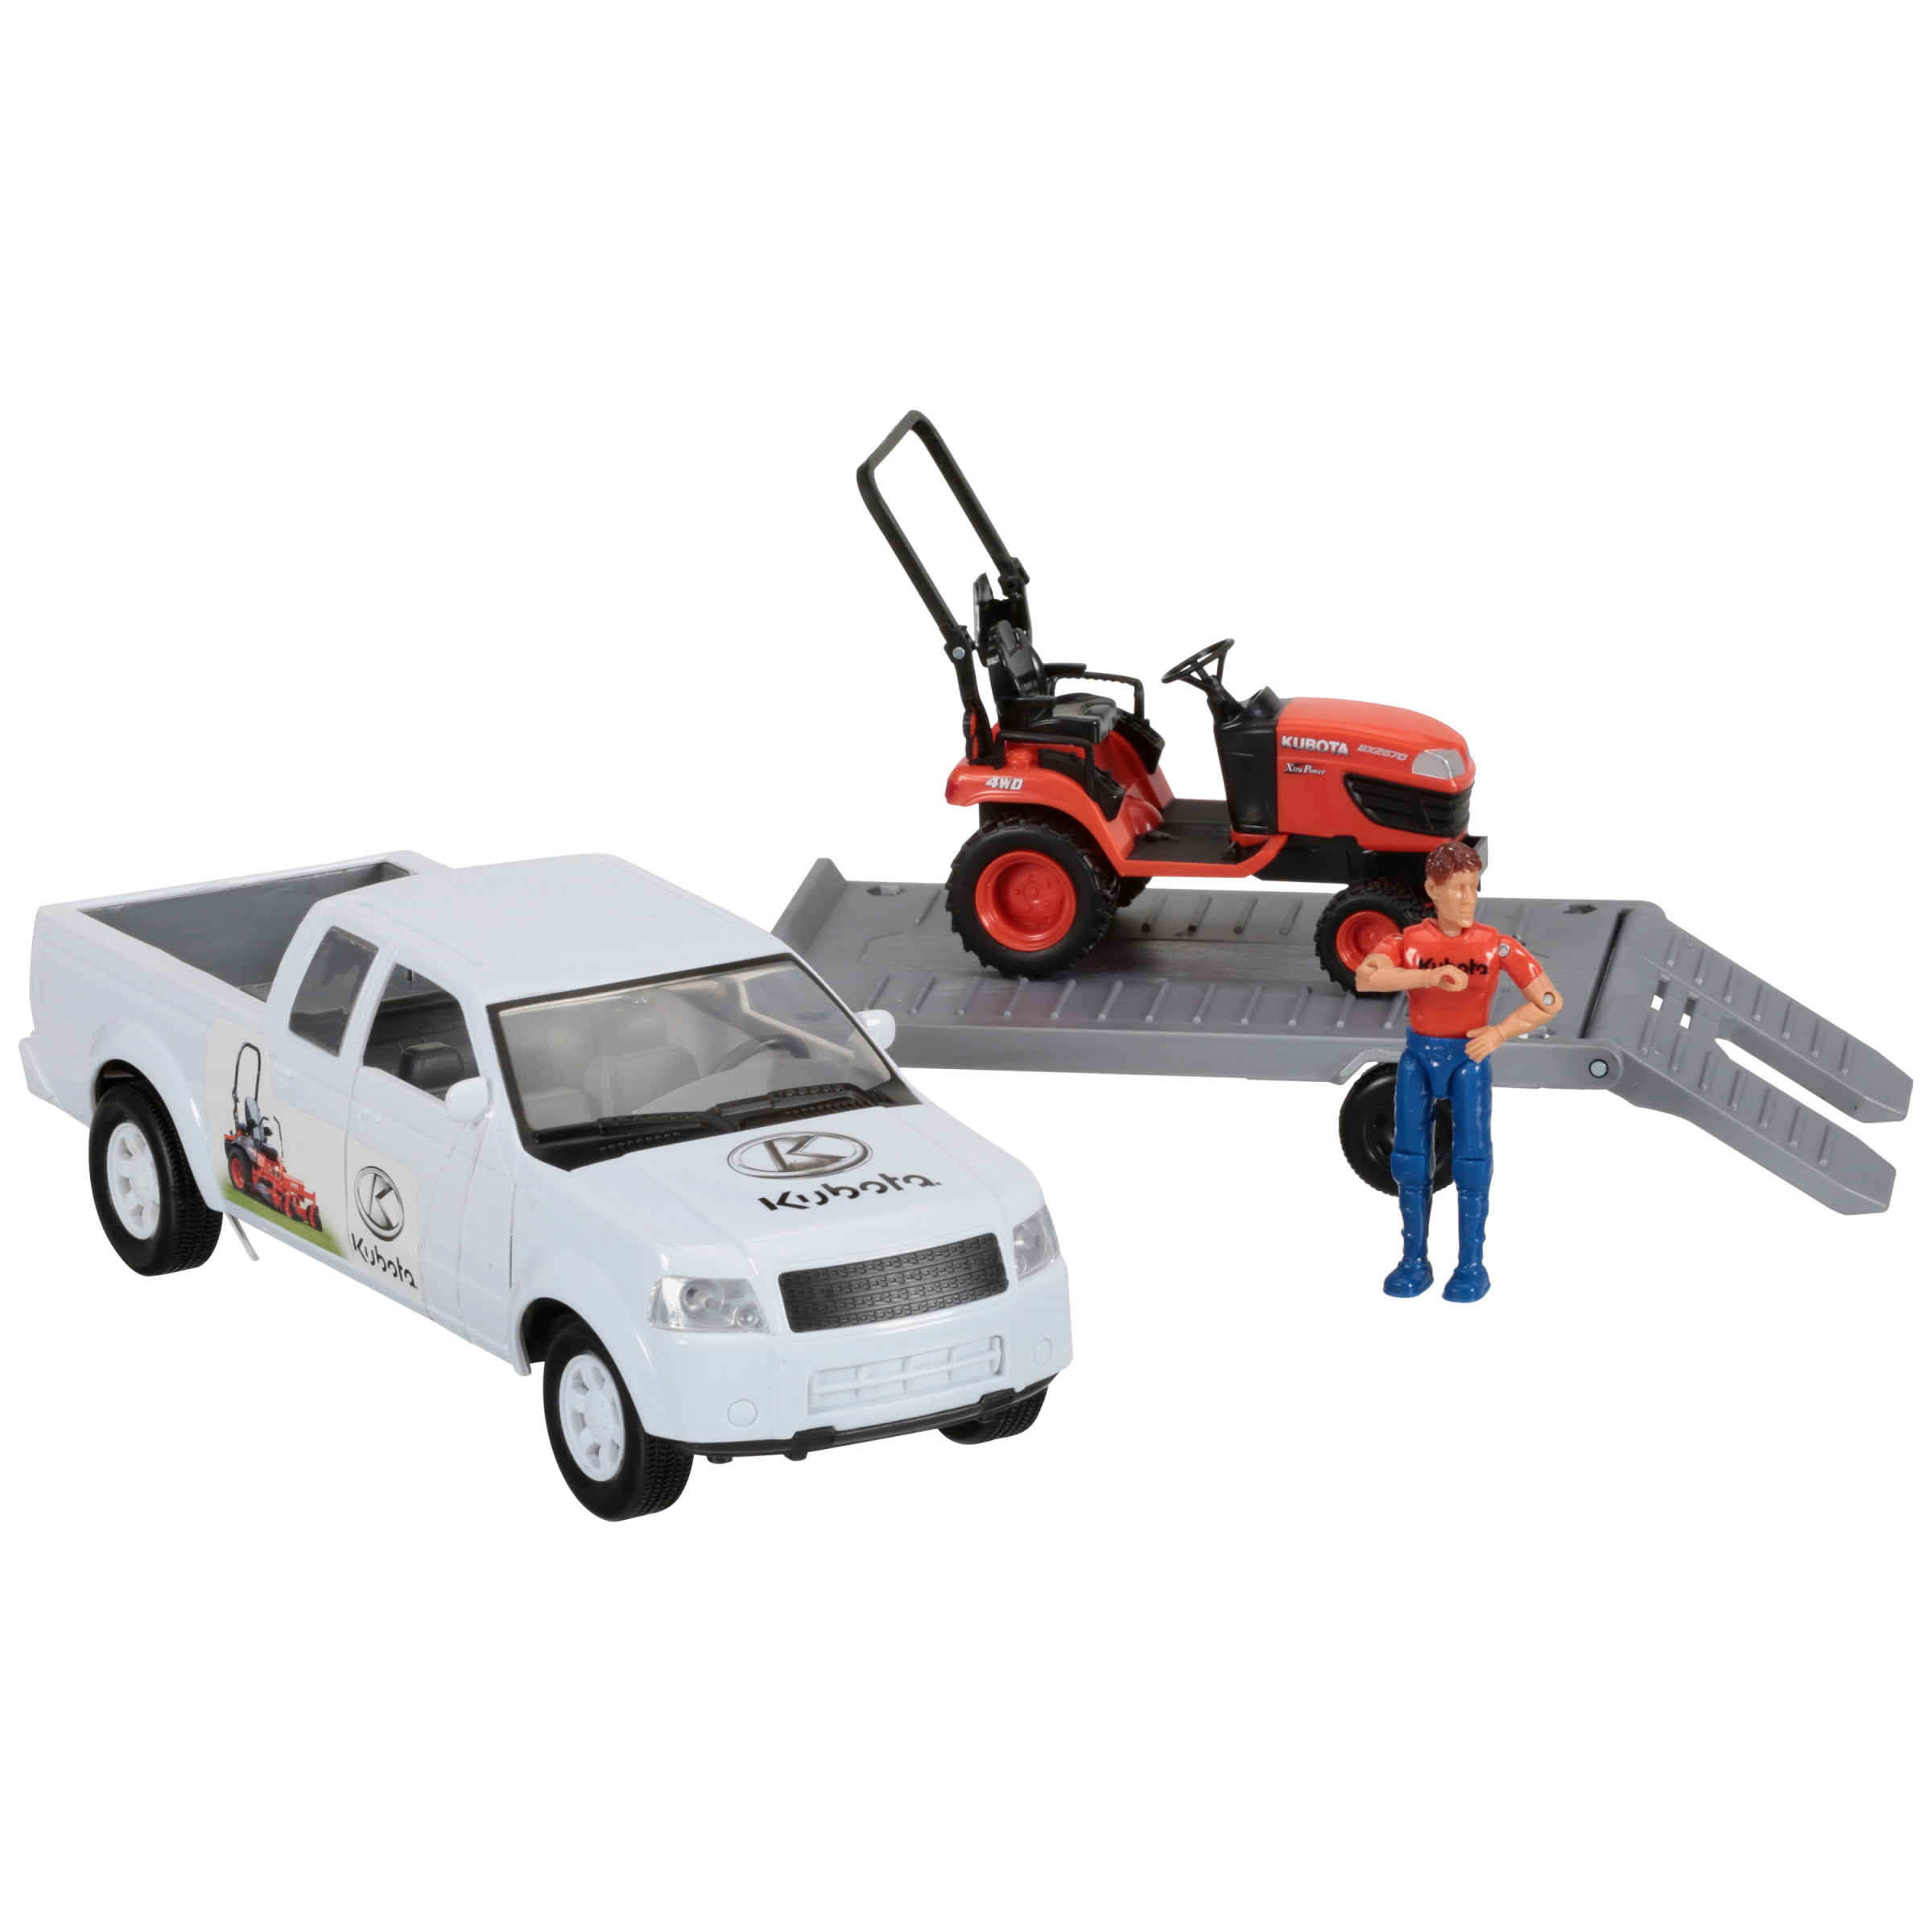 Kubota Pickup Truck with Trailer & Lawn Tractor Toy Set 4 pc Box by Kubota Tractor Corporation